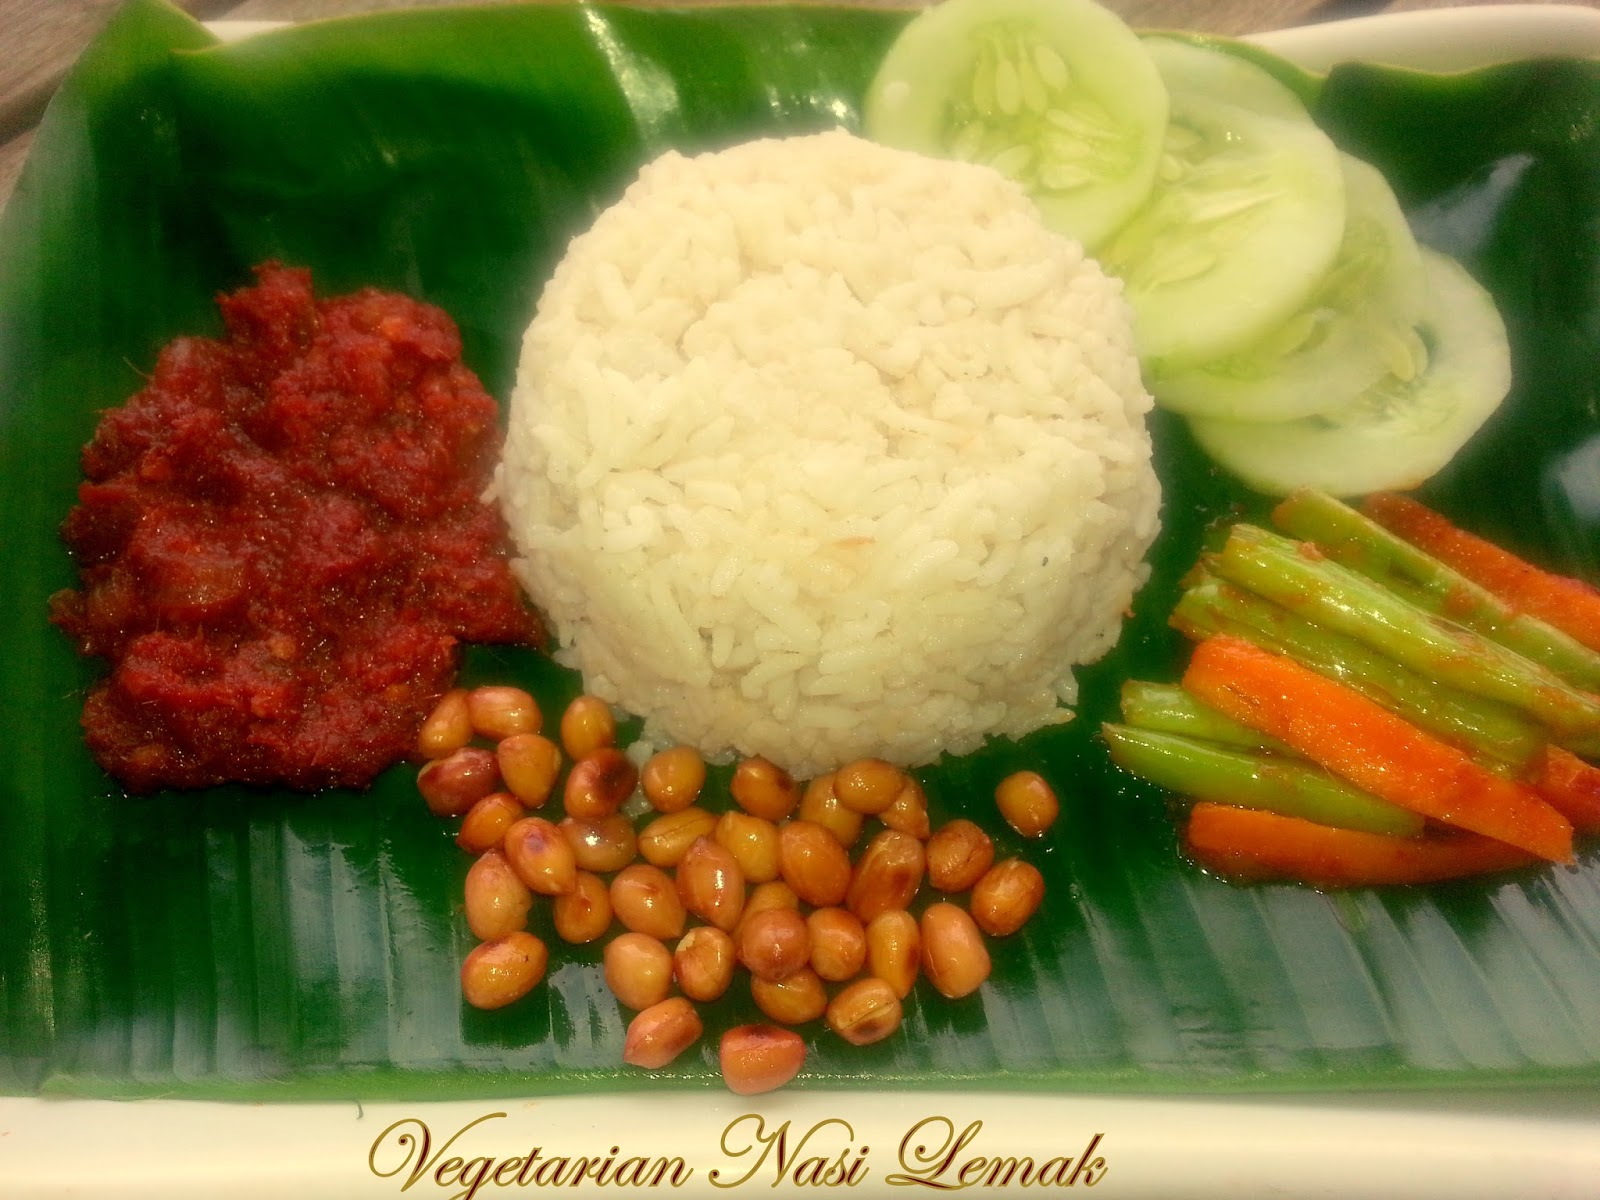 Annapurna vegetarian nasi lemak recipe malaysian cuisine vegetarian nasi lemak recipe malaysian cuisine nasi lemak is a familiar name to any one who lives in or has been to malaysia it is a fragrant rice dish forumfinder Choice Image